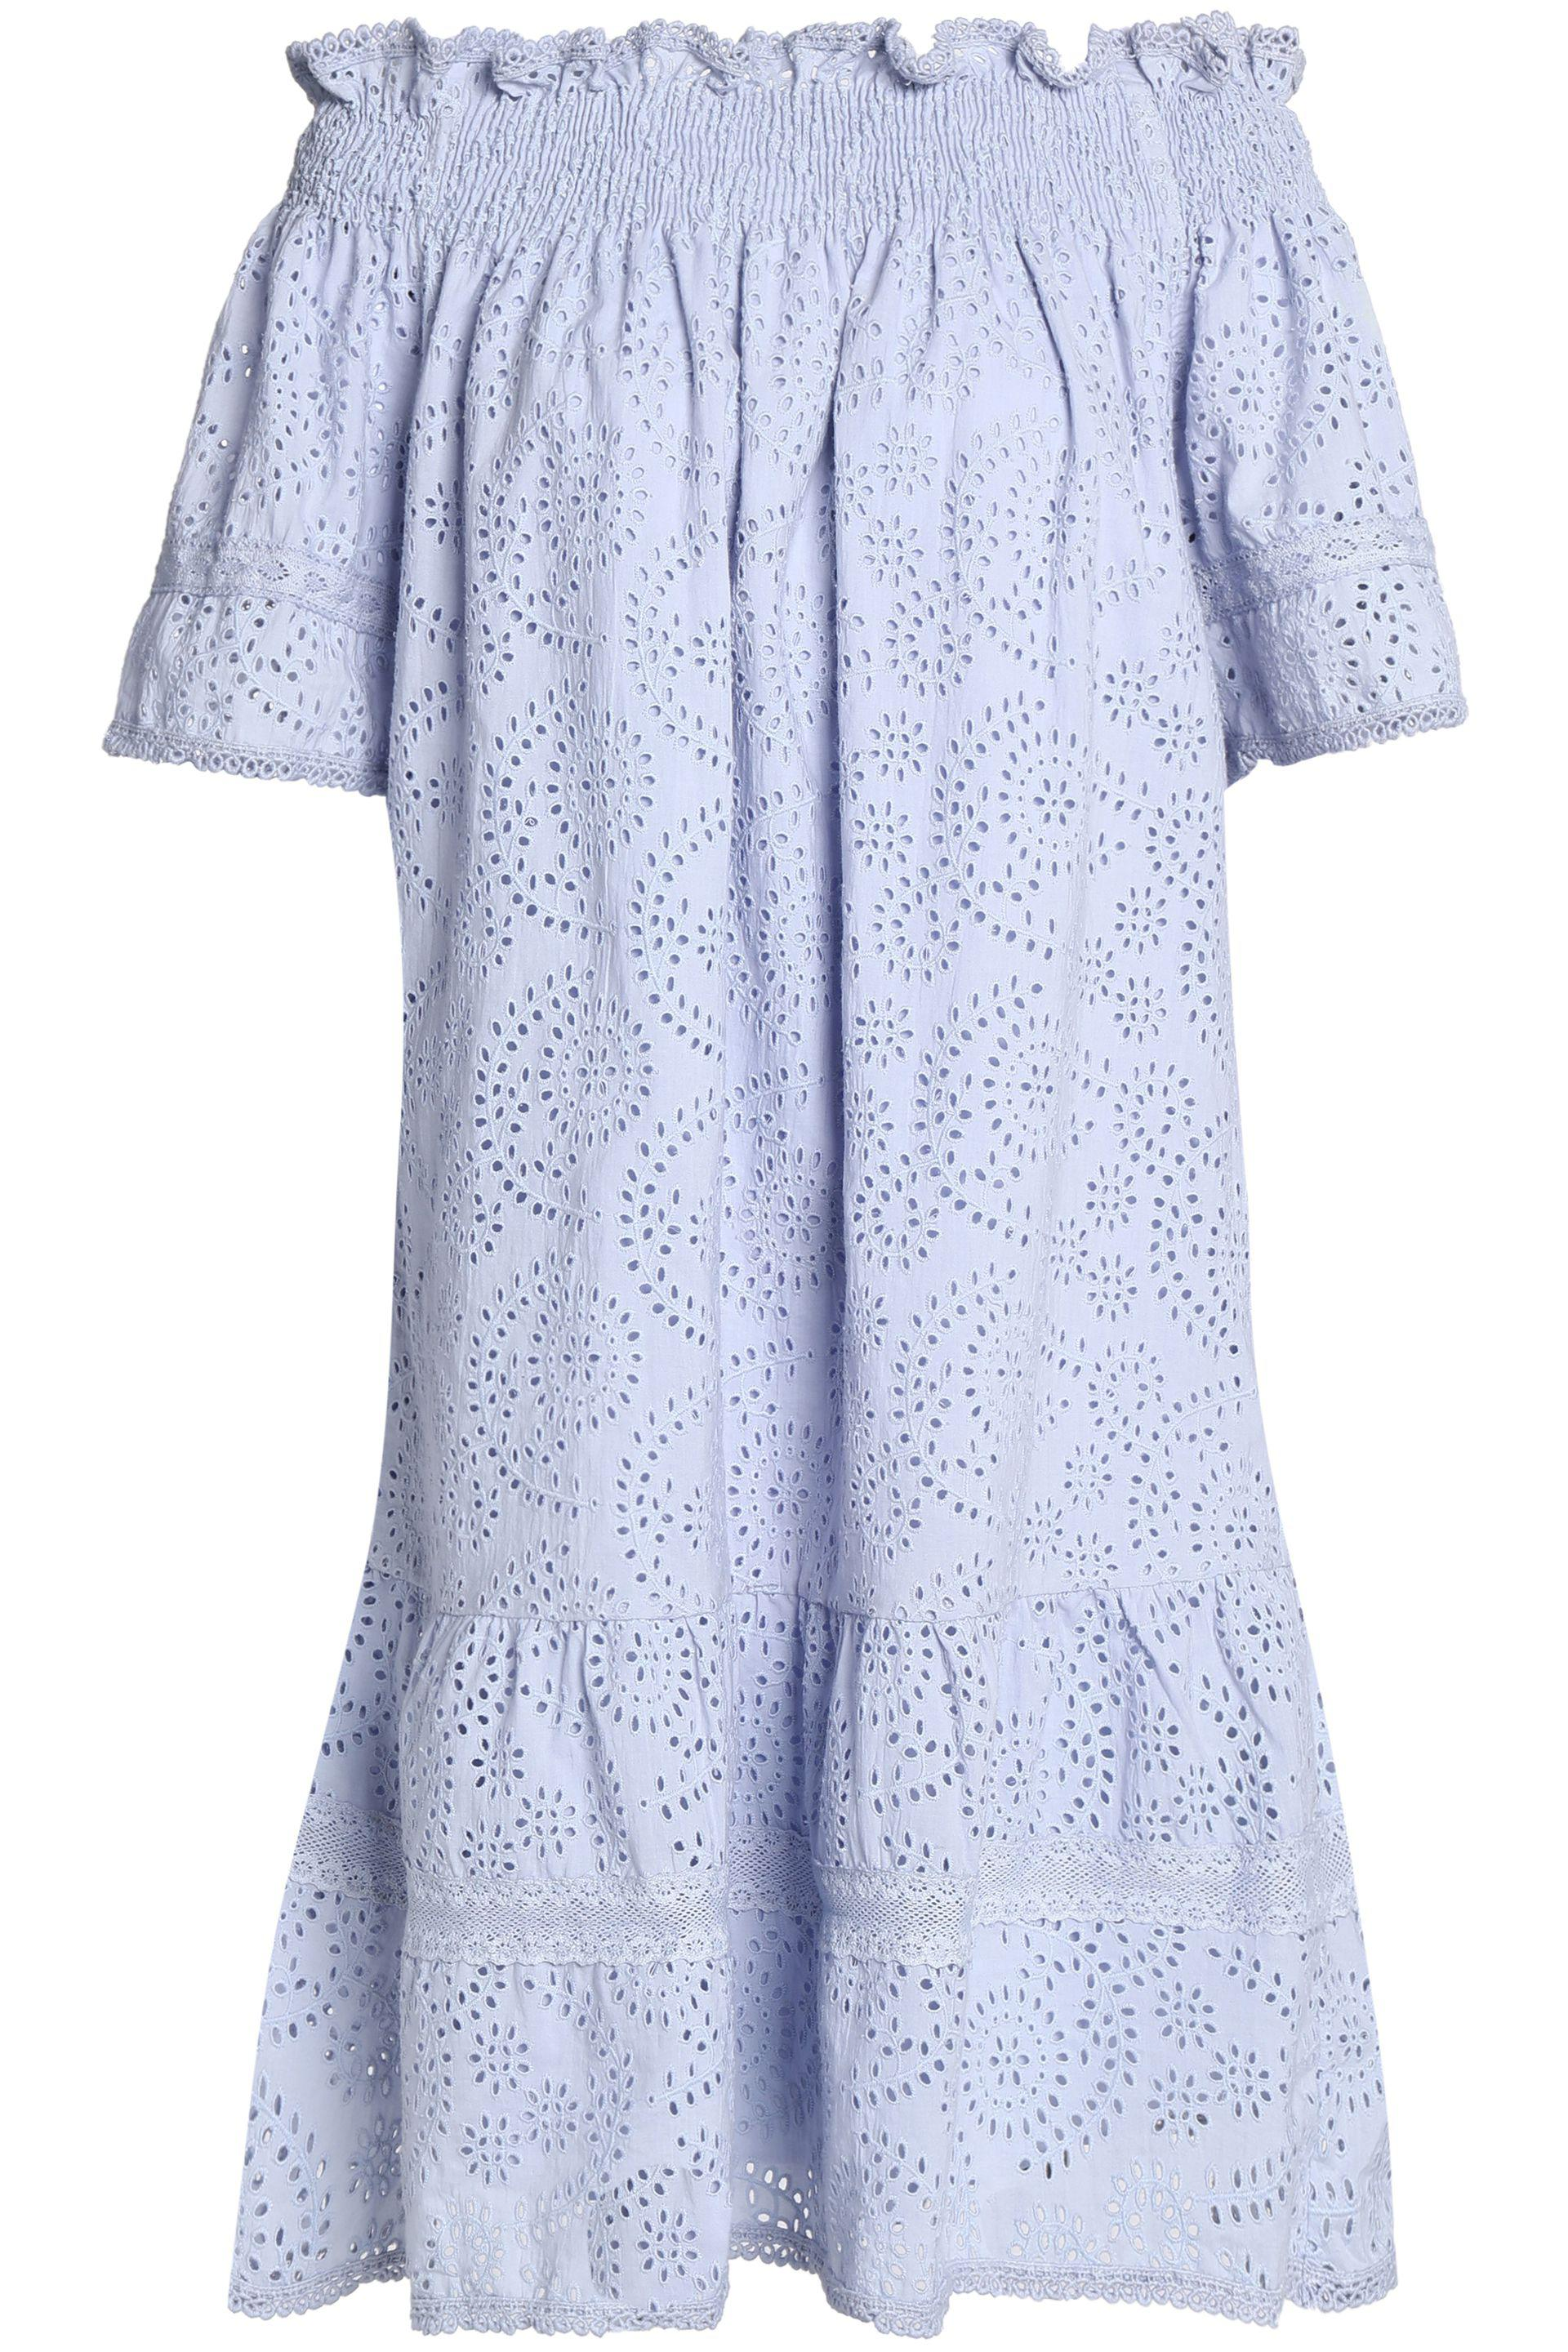 Needle & Thread Woman Off-the-shoulder Broderie Anglaise Cotton-poplin Dress White Size 12 Needle & Thread znhda9wReR